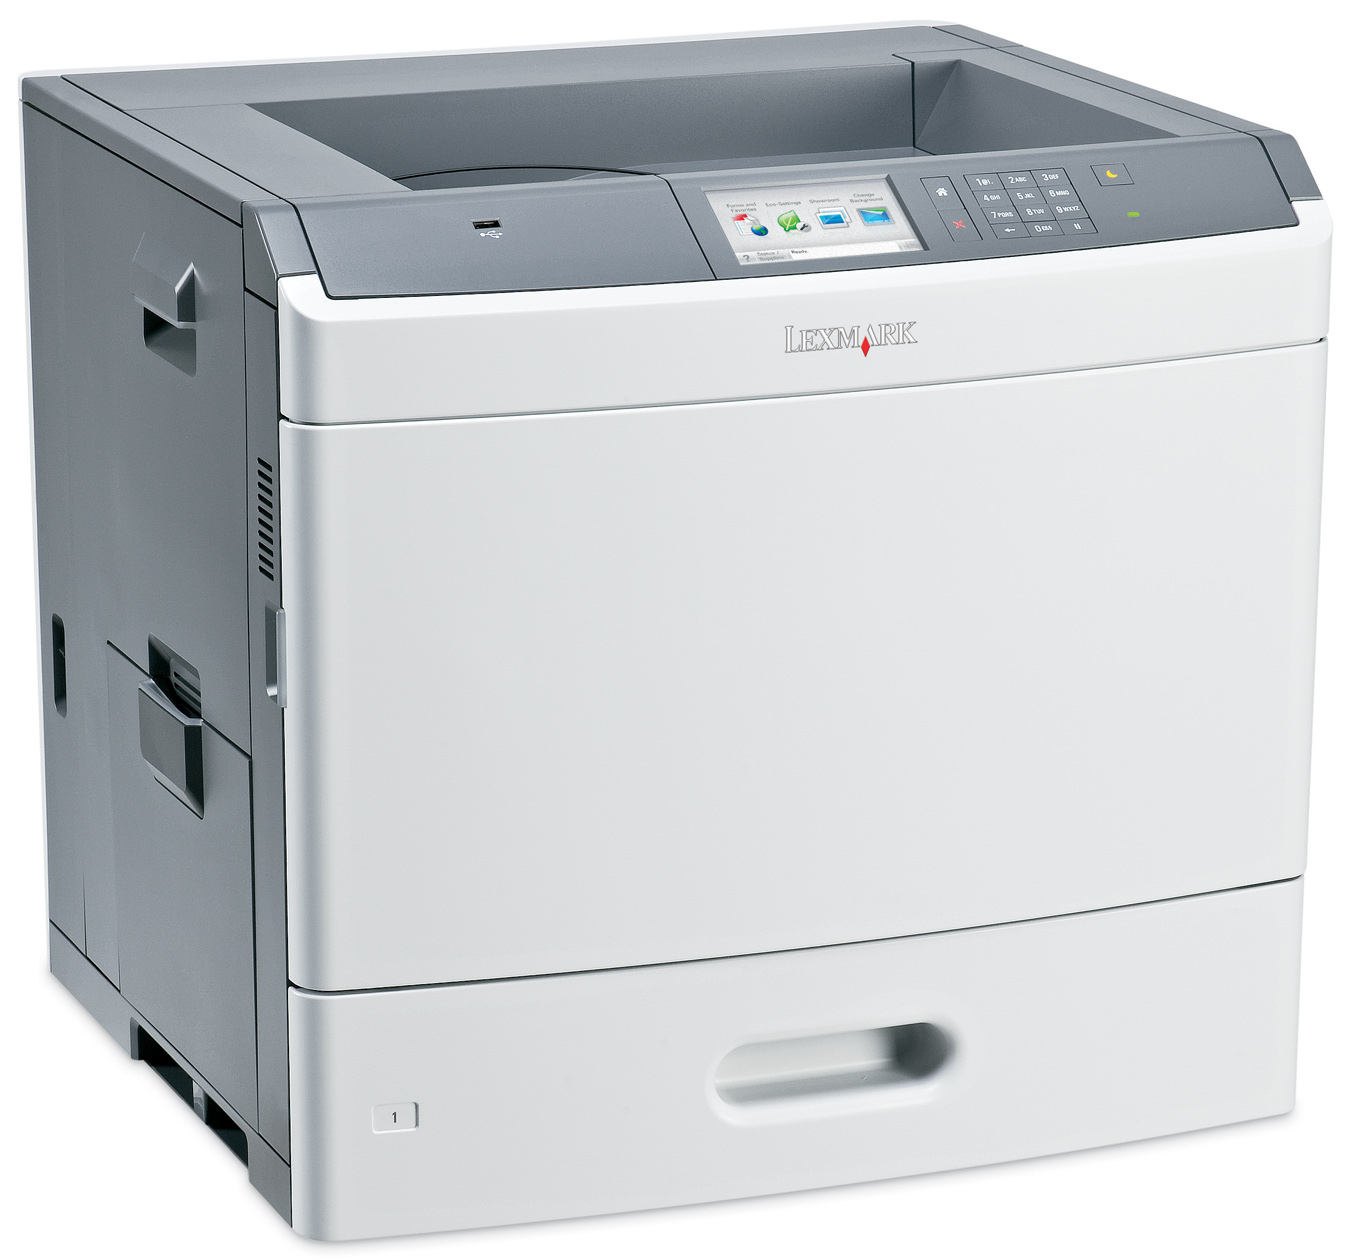 47B0001 Lexmark C792DE C792 Colour A4 Network & Duplex Ready Laser Printer  - Refurbished with 3 months RTB warranty